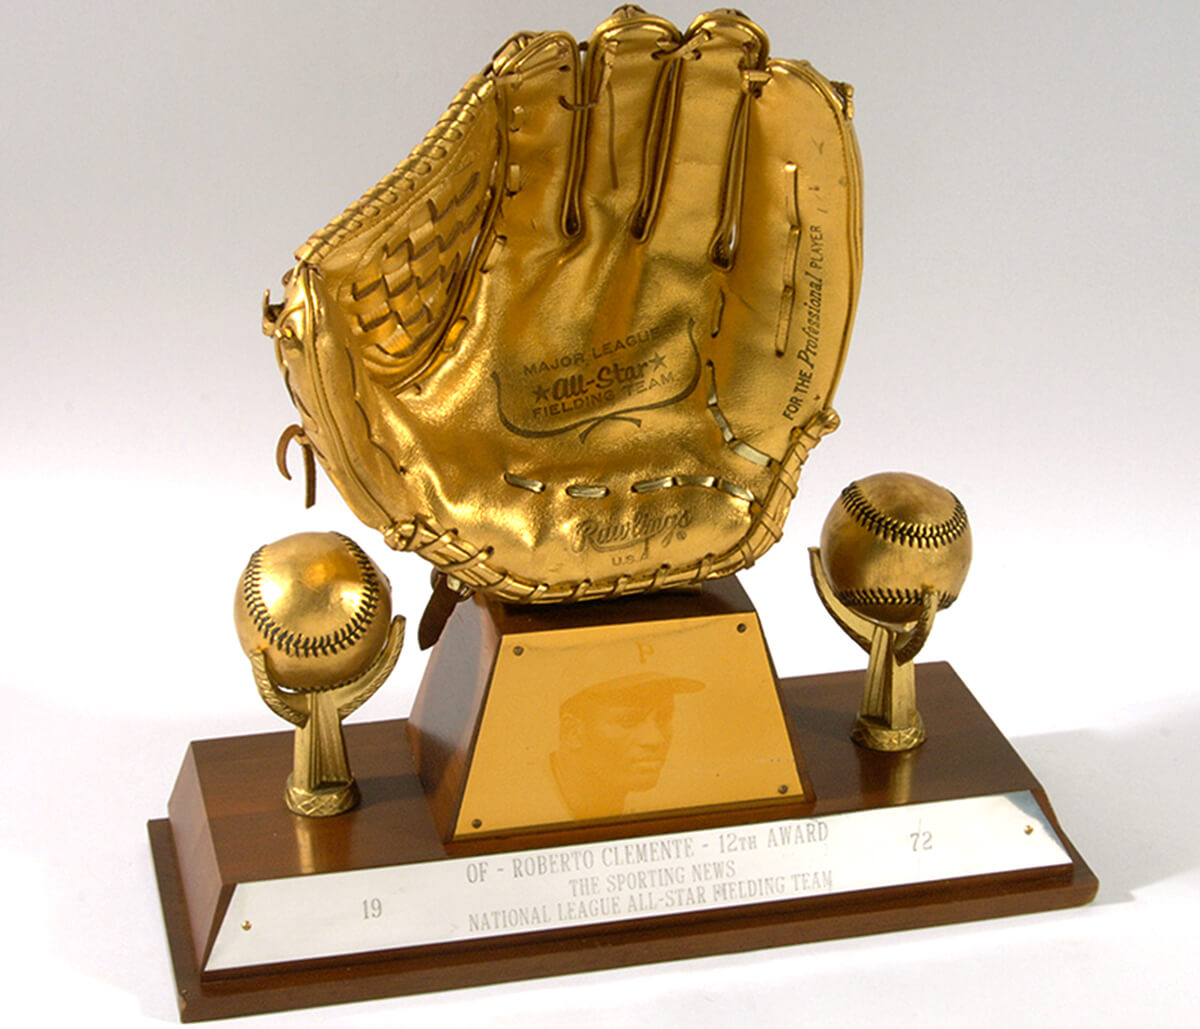 new product 130b8 37dc1 Clemente Awards Gallery - Roberto Clemente Foundation